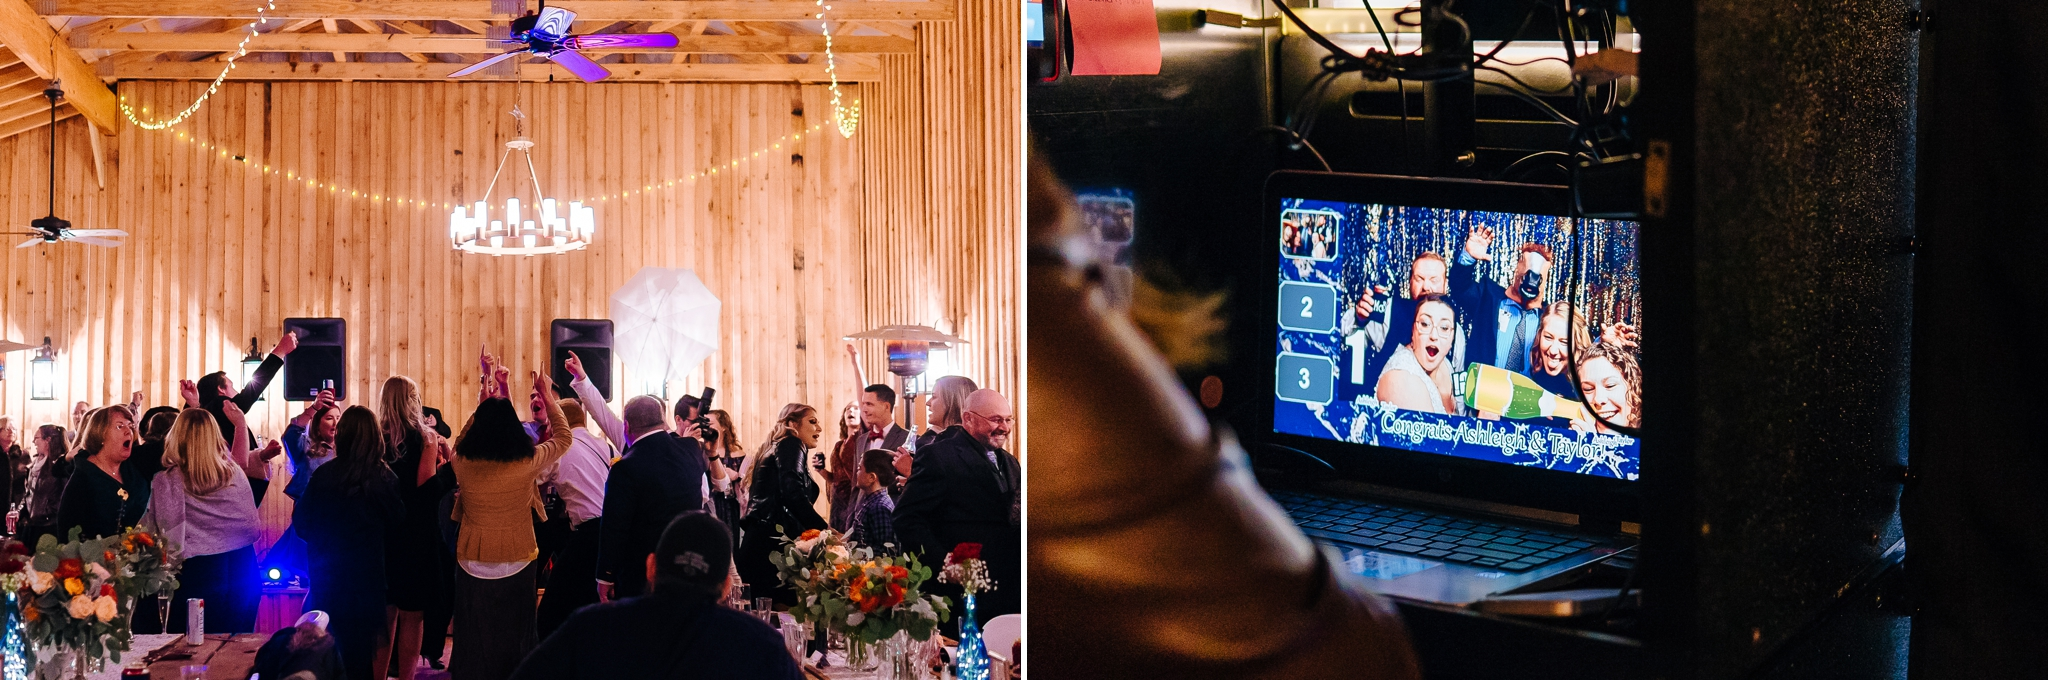 Wedding_reception_photo_booth_and_dancing_at_wolftrap_farms_by_jonathan_and_hannah_photography